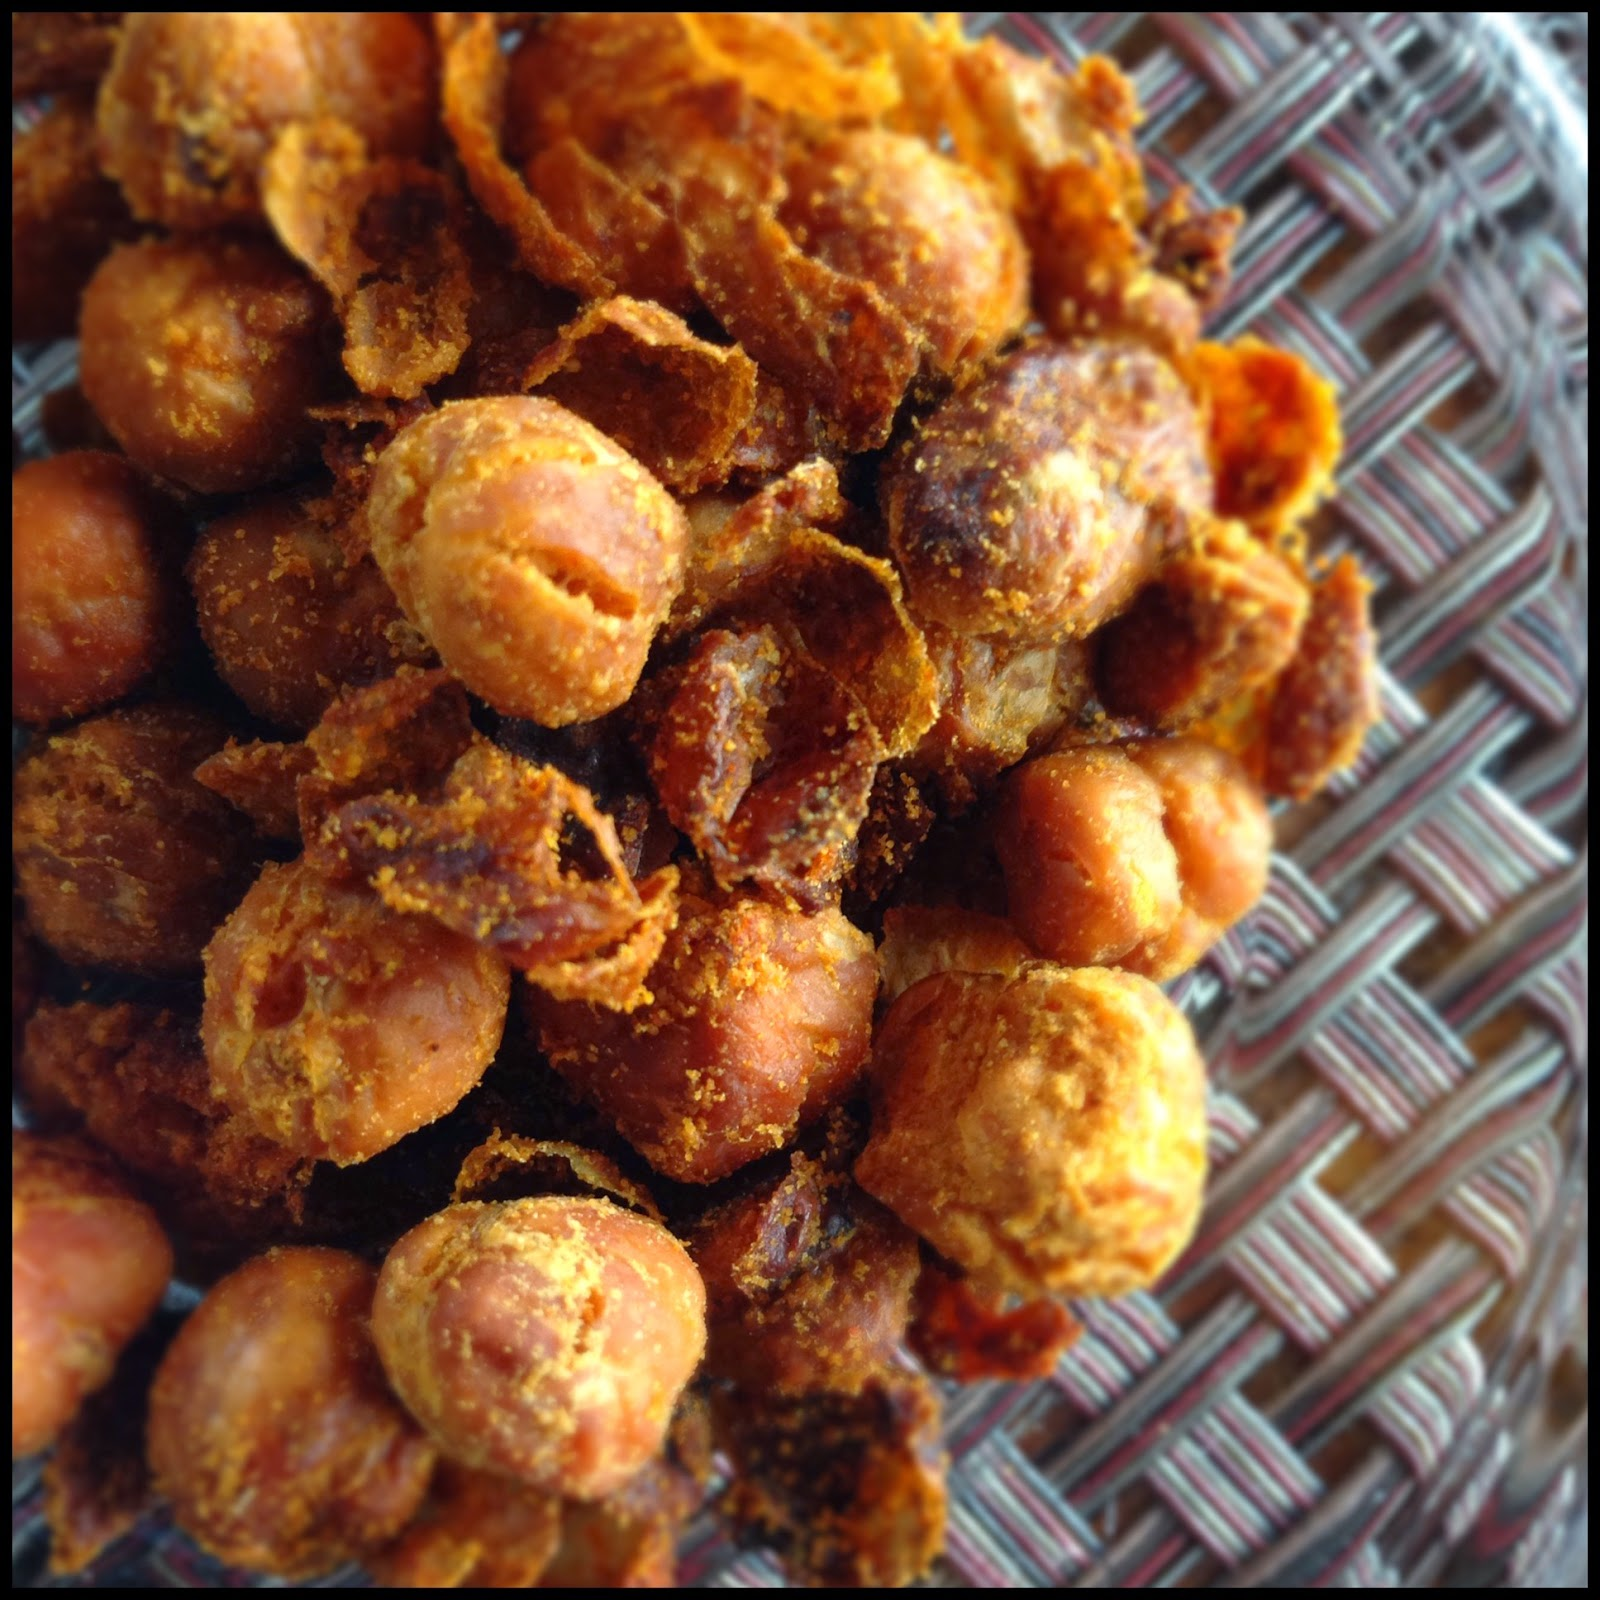 Spindles and Spices: Roasted Chickpea Snack with Smoked ...